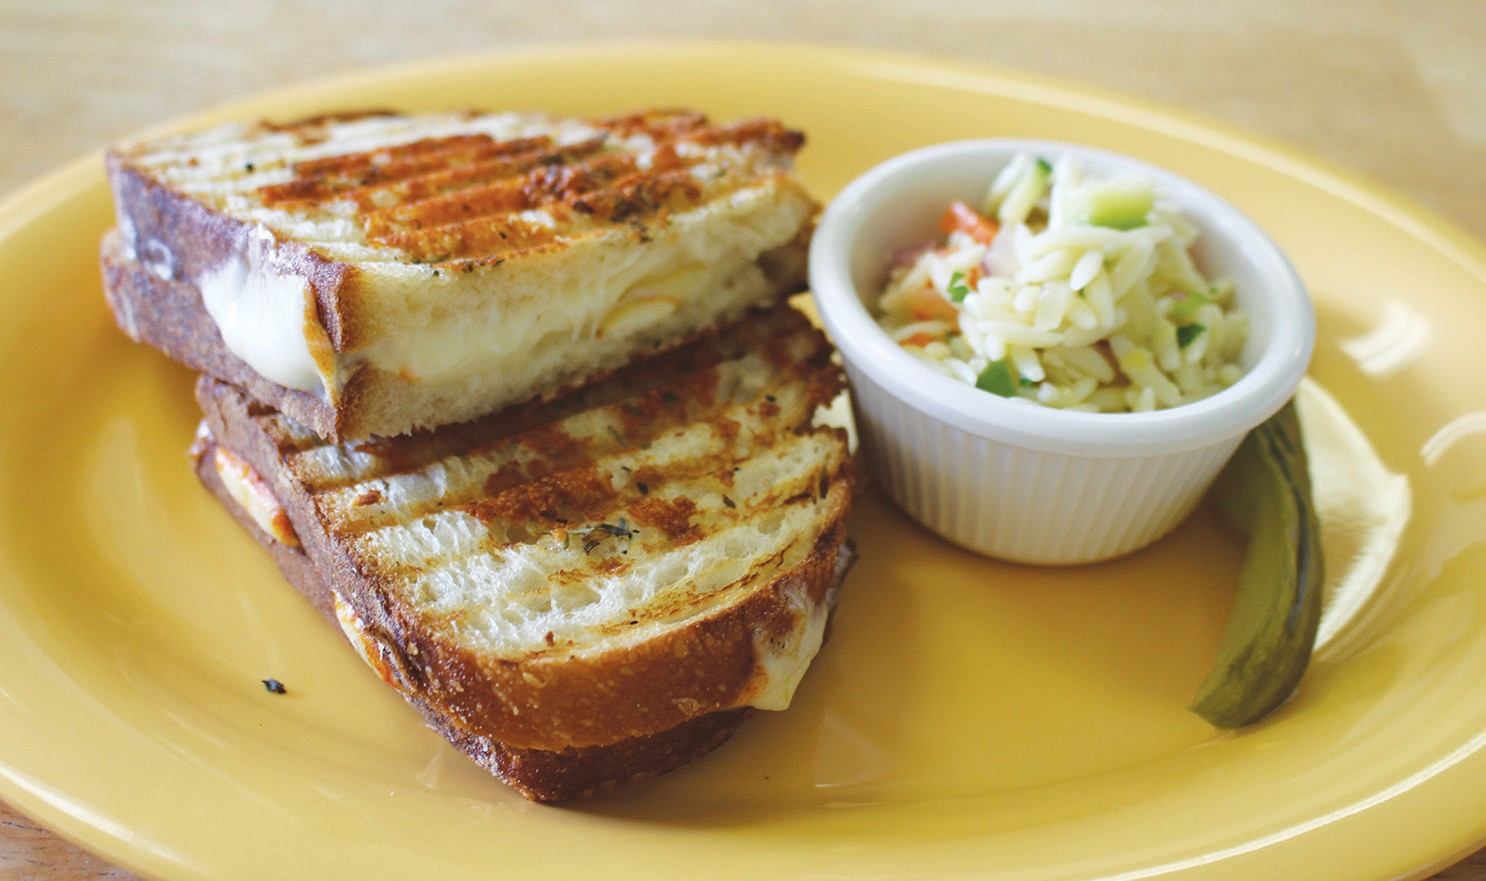 The basic cheese panini, served with orzo salad.